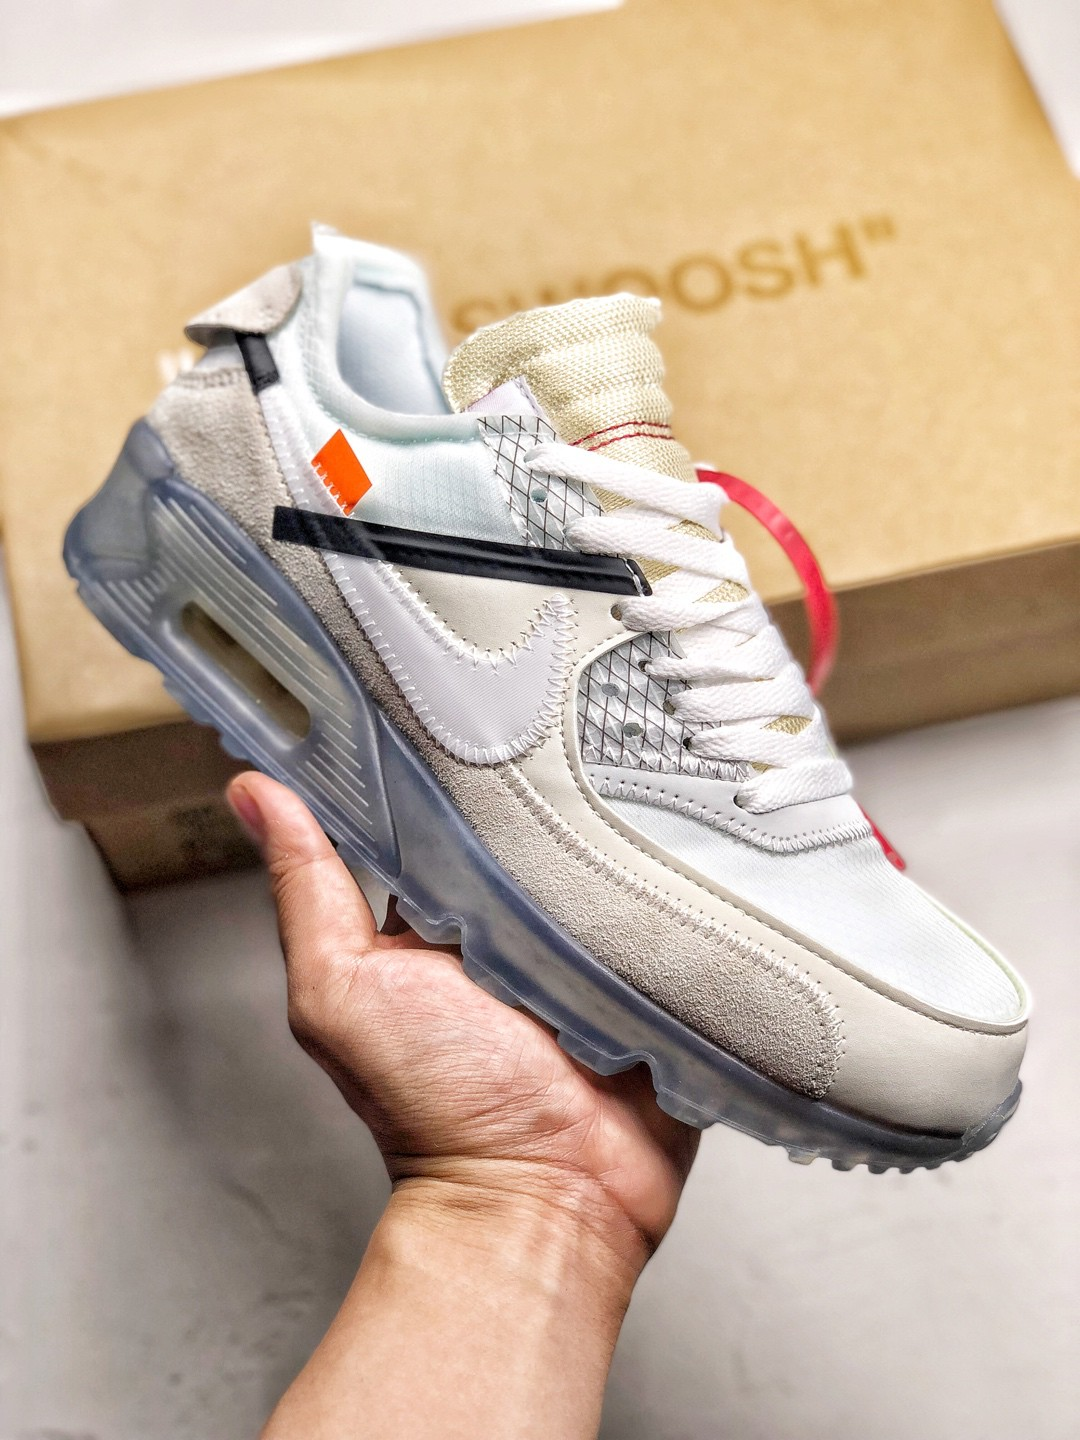 Off White Nike Air Max 90 Buy,Nike Air Max 90 Material,AA7293 100 Nike OFF WHITE x Nike Air Max 90 Avant garde fascination over